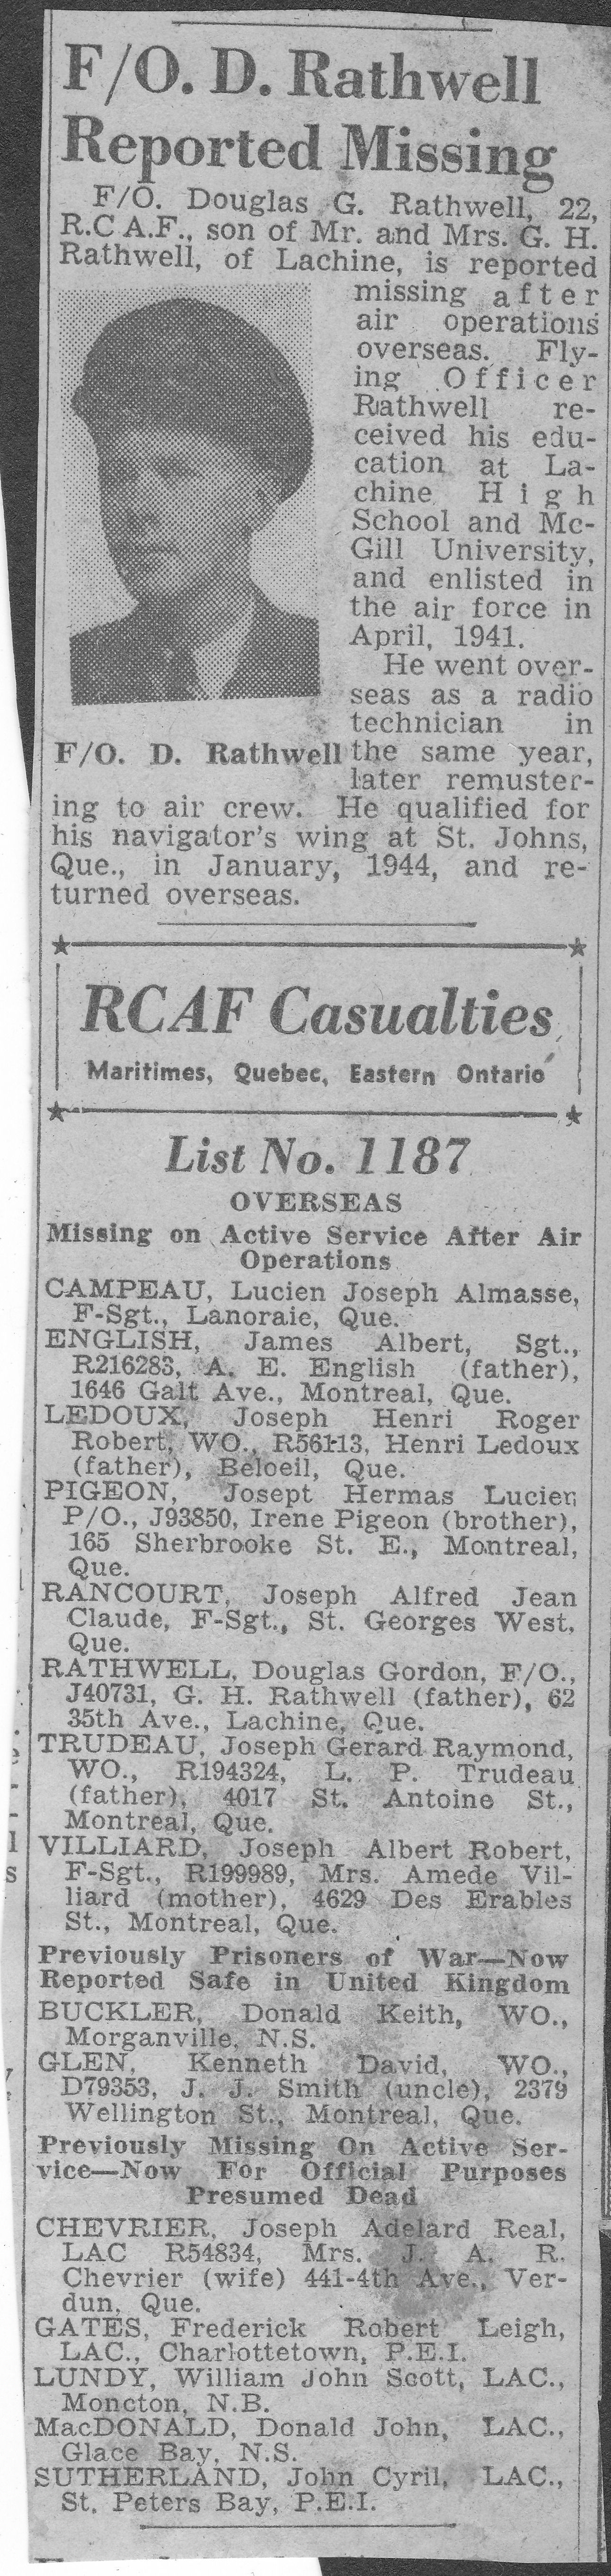 Newspaper Clipping– The head shot was obtained from the McGill University archives where Douglas studied Commerce before enlisting. He began his military career as a radio operator and then retrained as a navigator. He was killed on March 31, 1945 during a mission over Hamburg. The other two clips are from newspaper articles at the time.